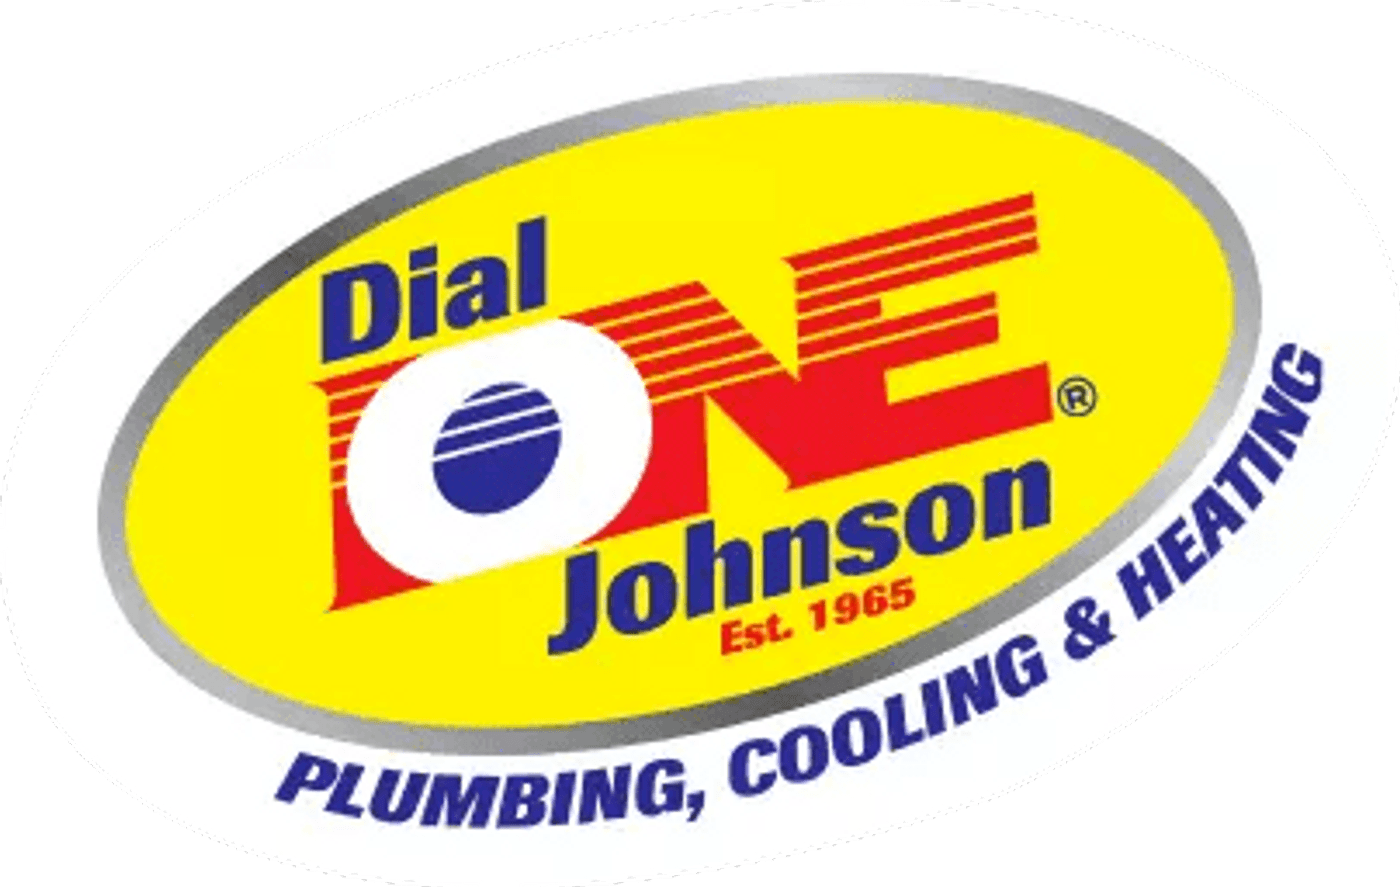 For Reliable Plumbing Service in Duncanville, Call Dial One Johnson